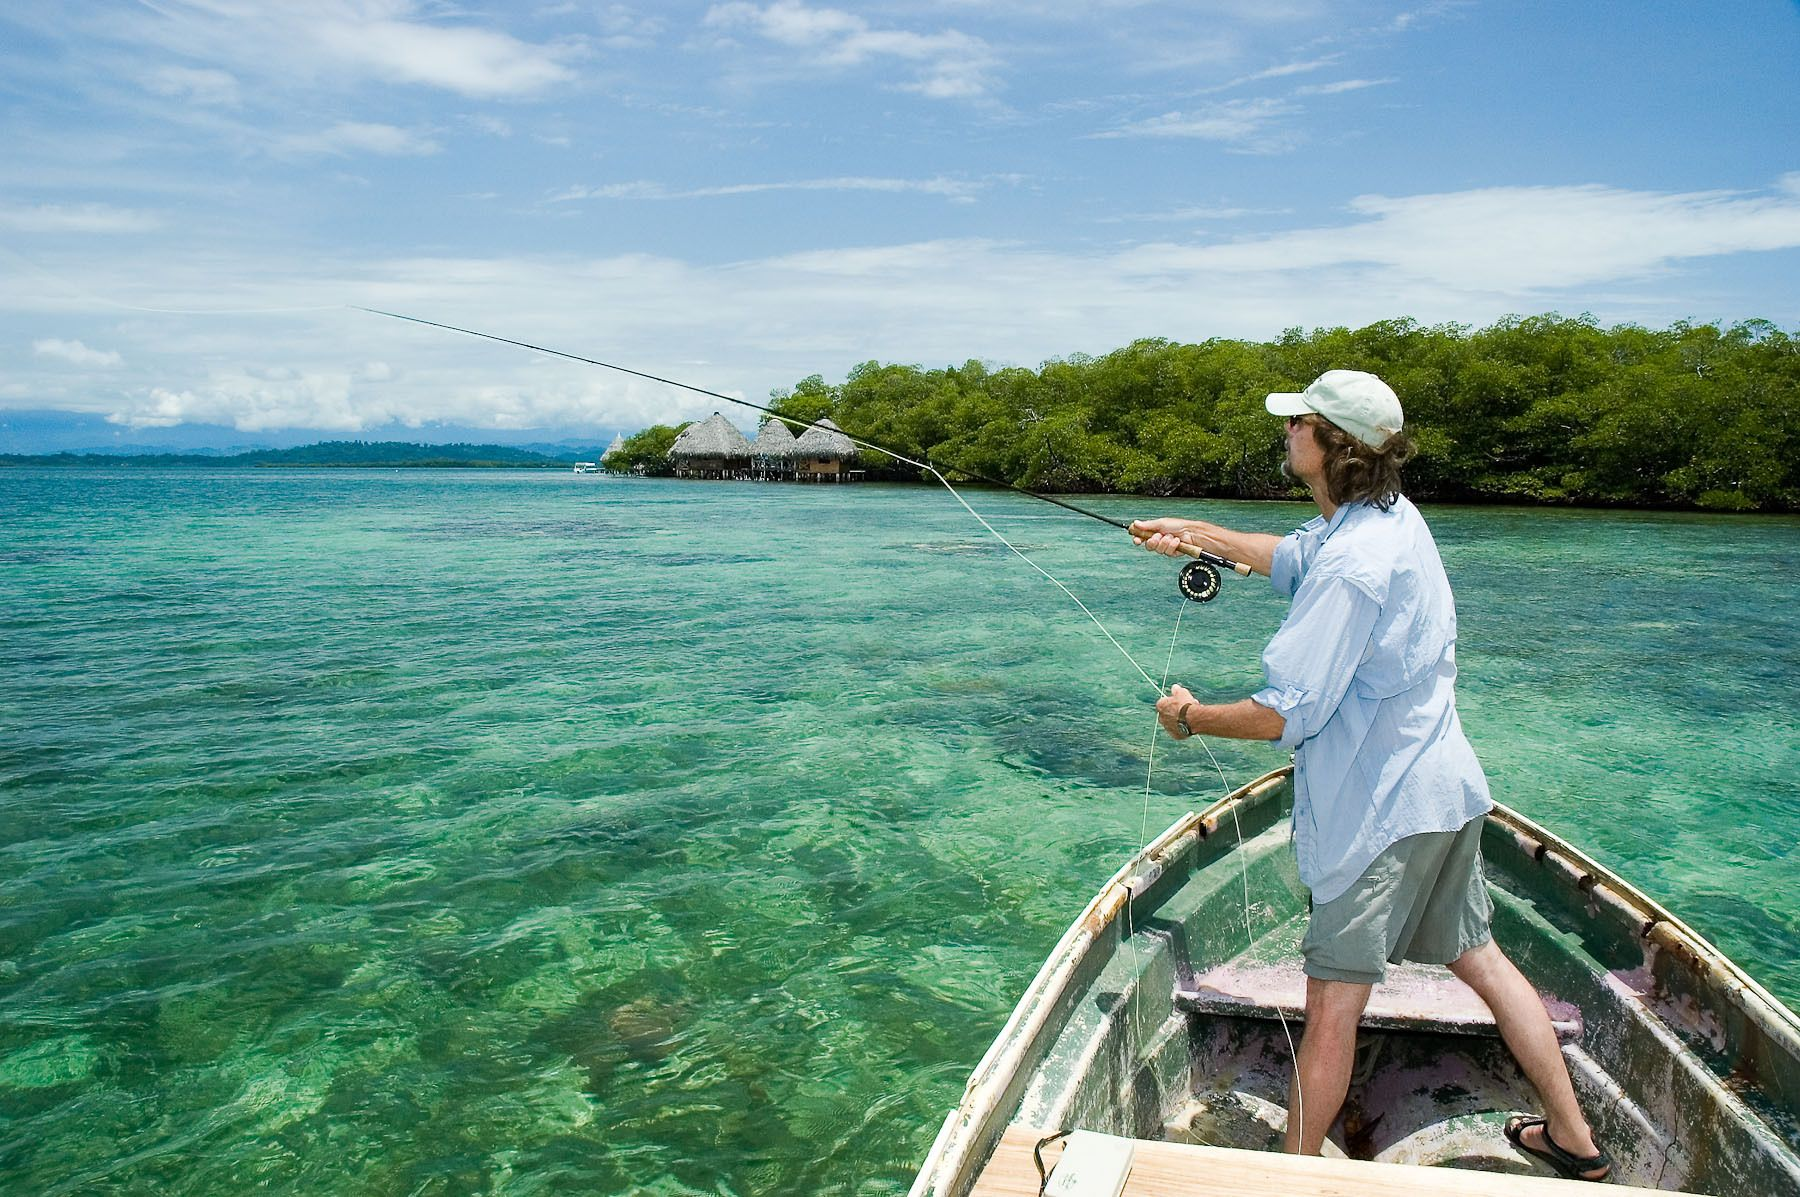 Fly Fishing over a Shallow Reef